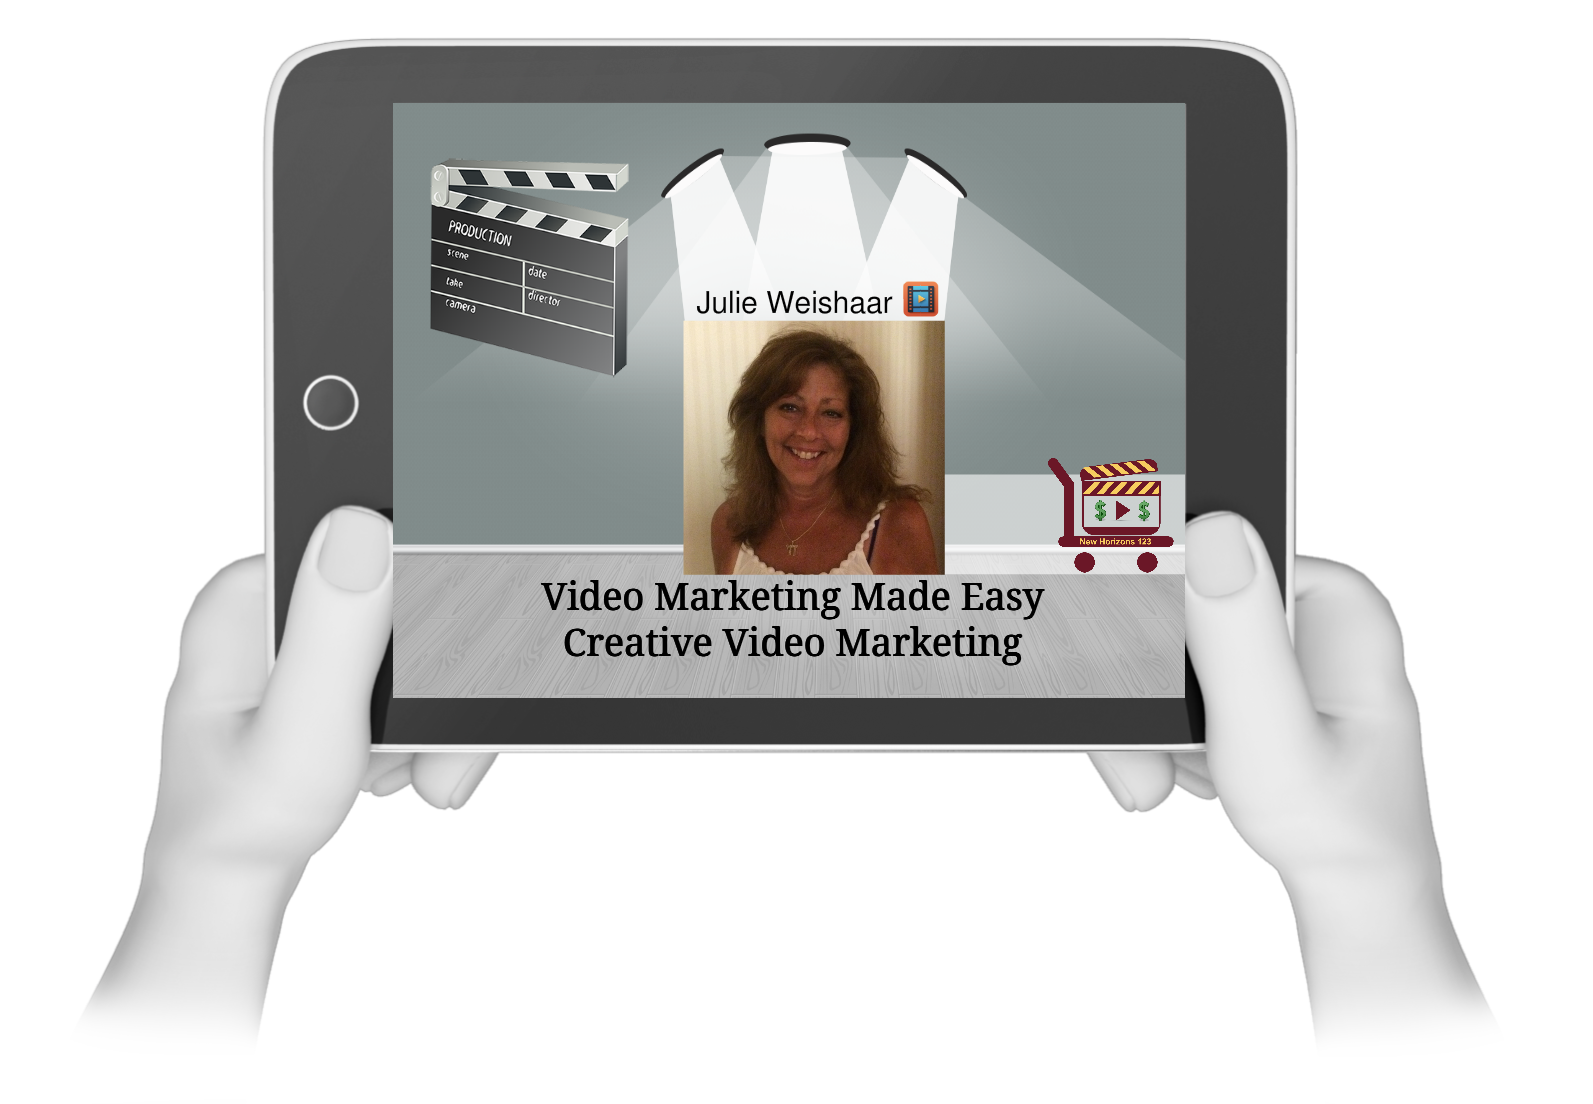 Video Marketing Made Easy